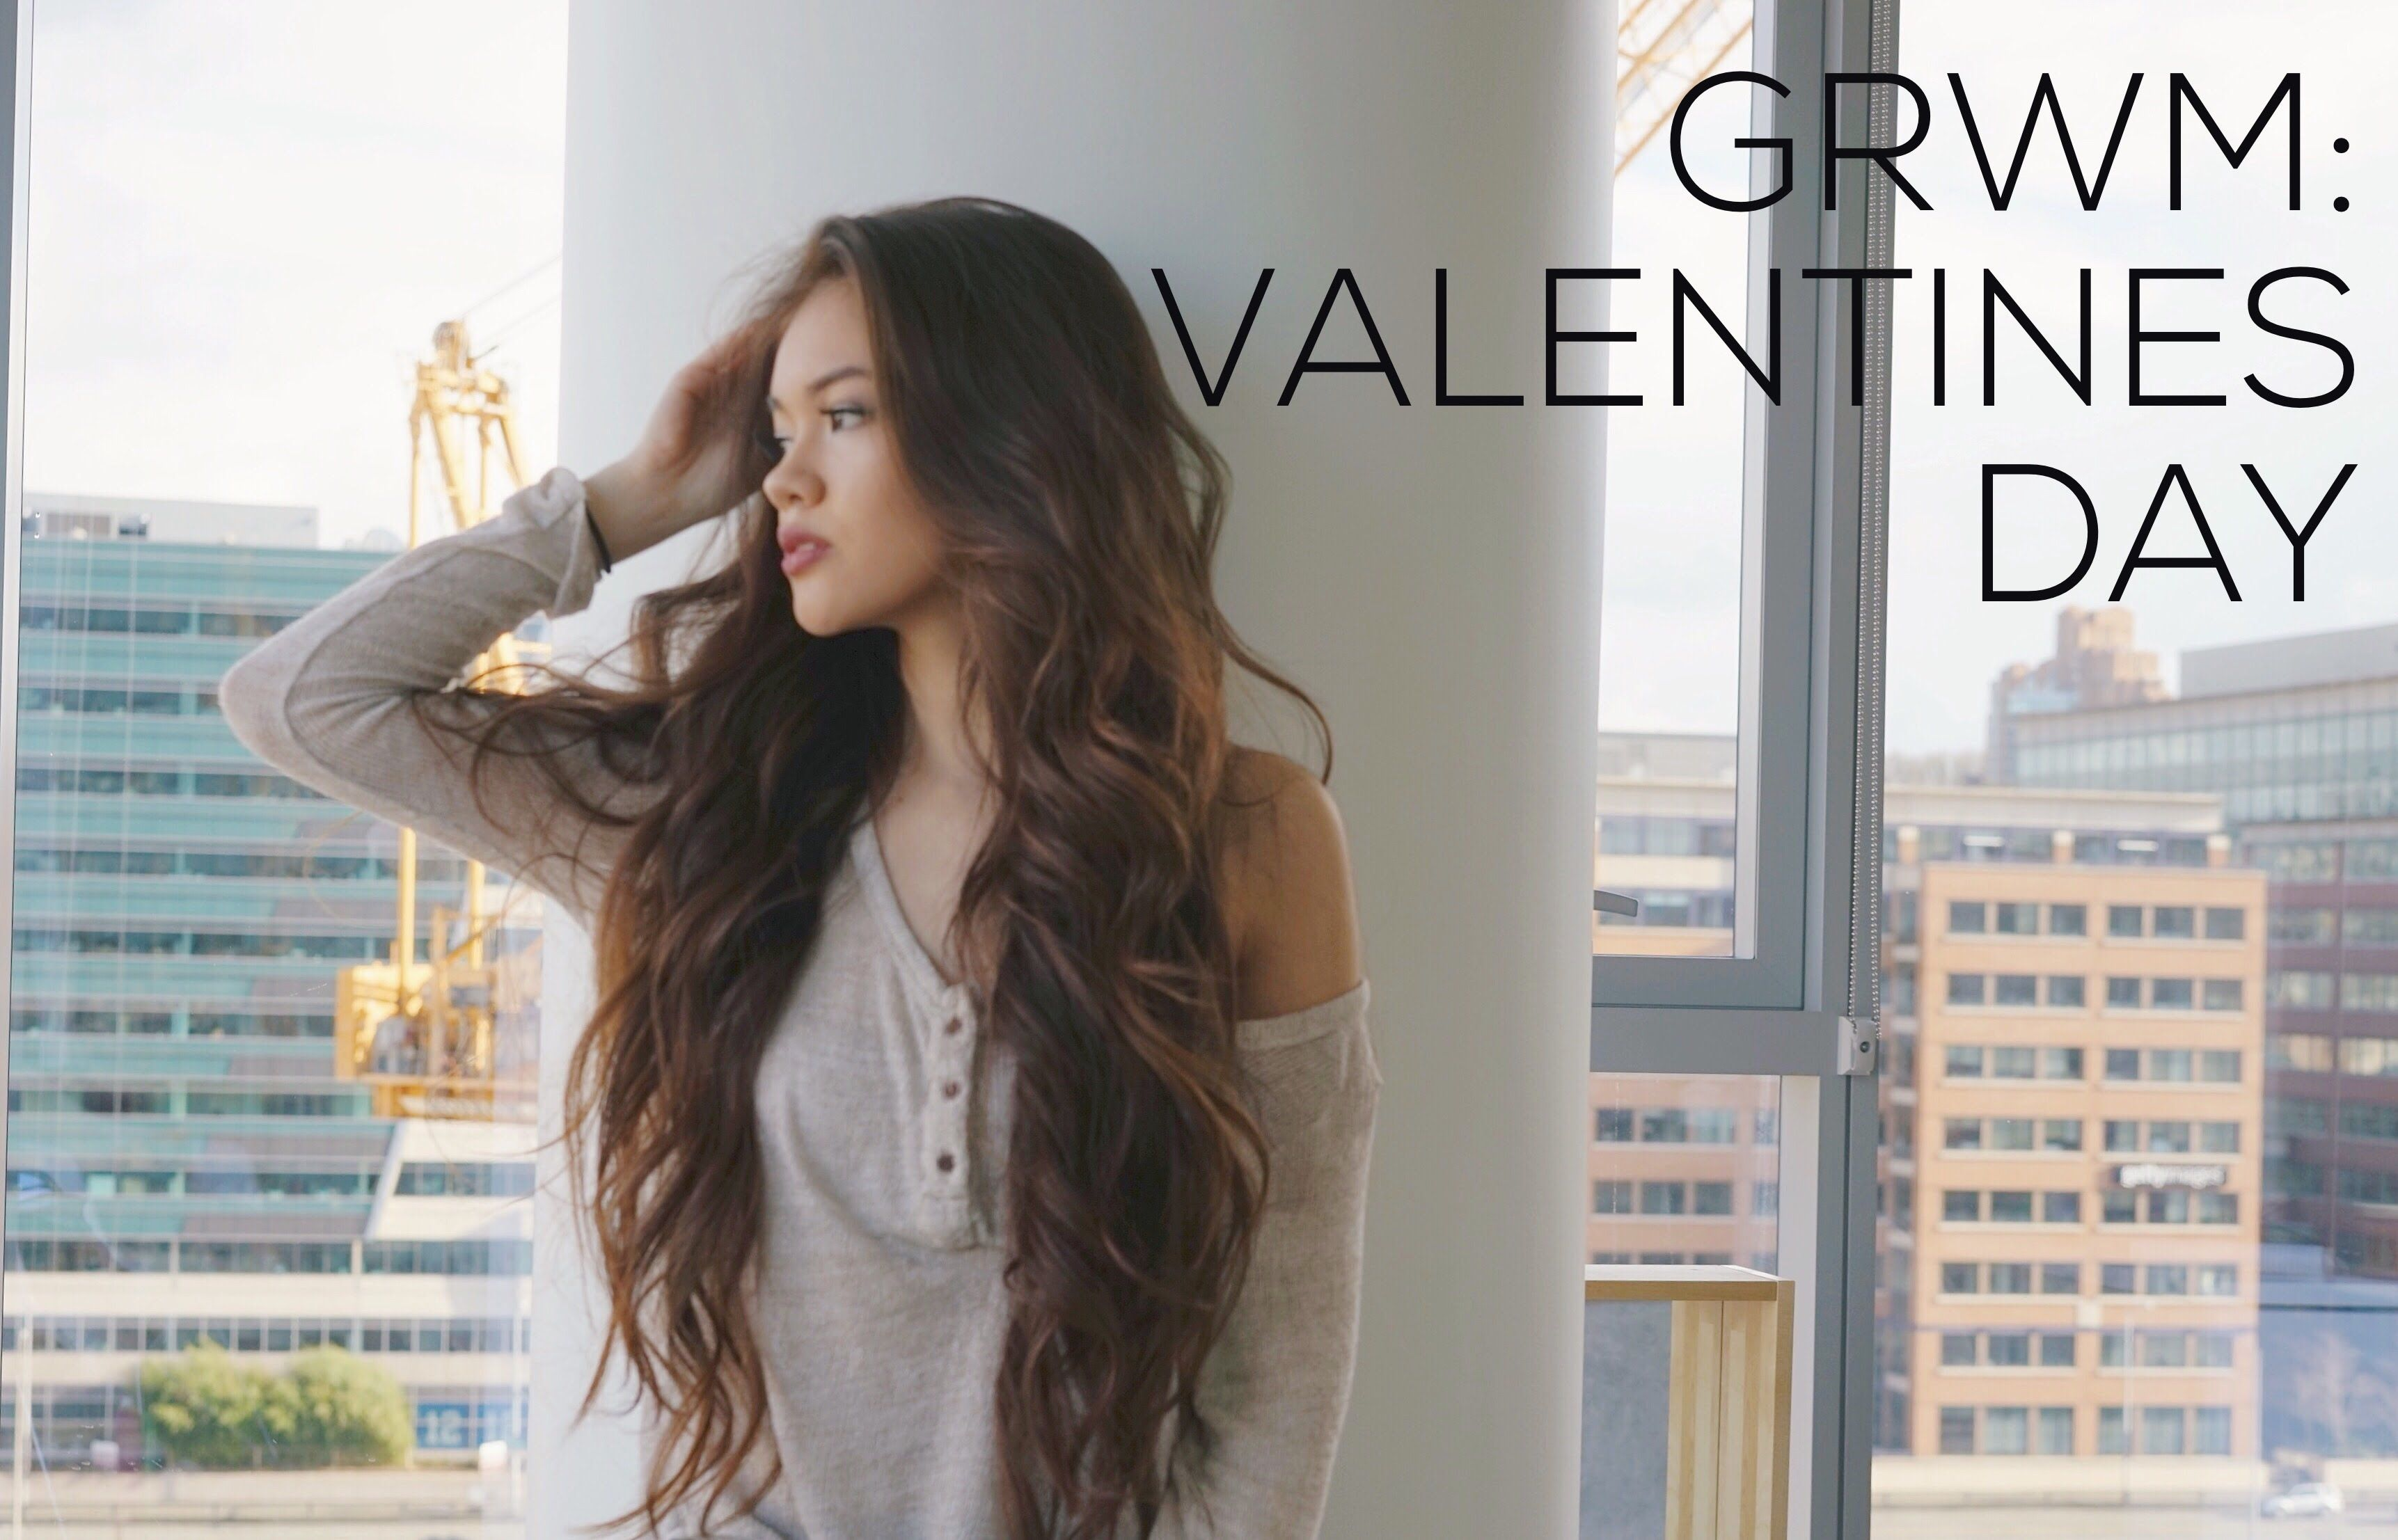 Grwm Valentines Day Makeup Hair And Outfit Ideas Day Makeup Valentines Day Makeup Hair More ideas from ratti chauhan. pinterest